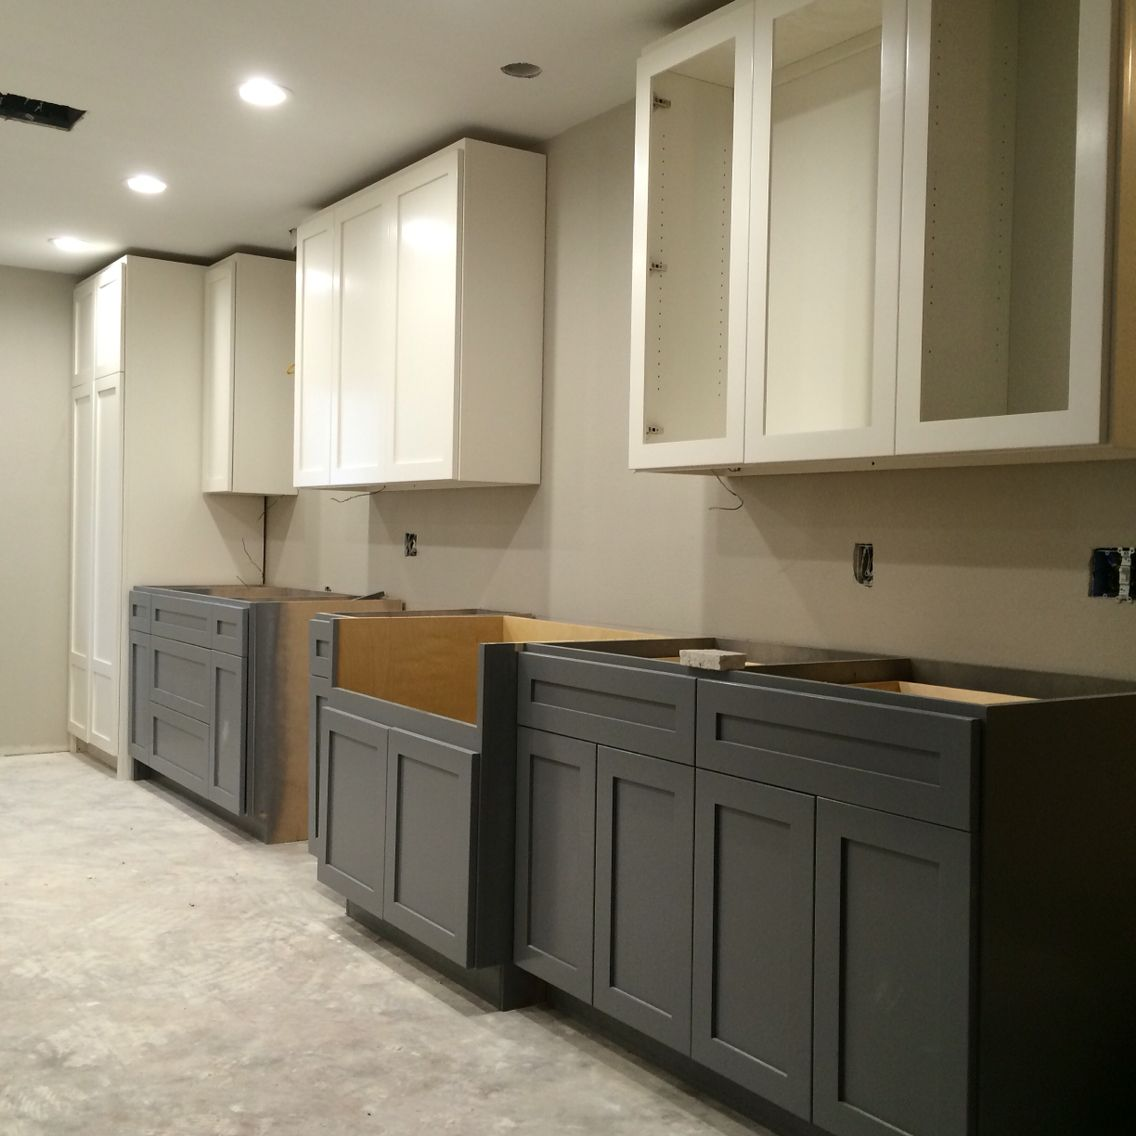 Two Tone Kitchen Sherwin Williams Alabaster Cabinets Benjamin Moore Whale Gray Kitchen Cabinets Color Combination Two Tone Kitchen Cabinets Two Tone Kitchen